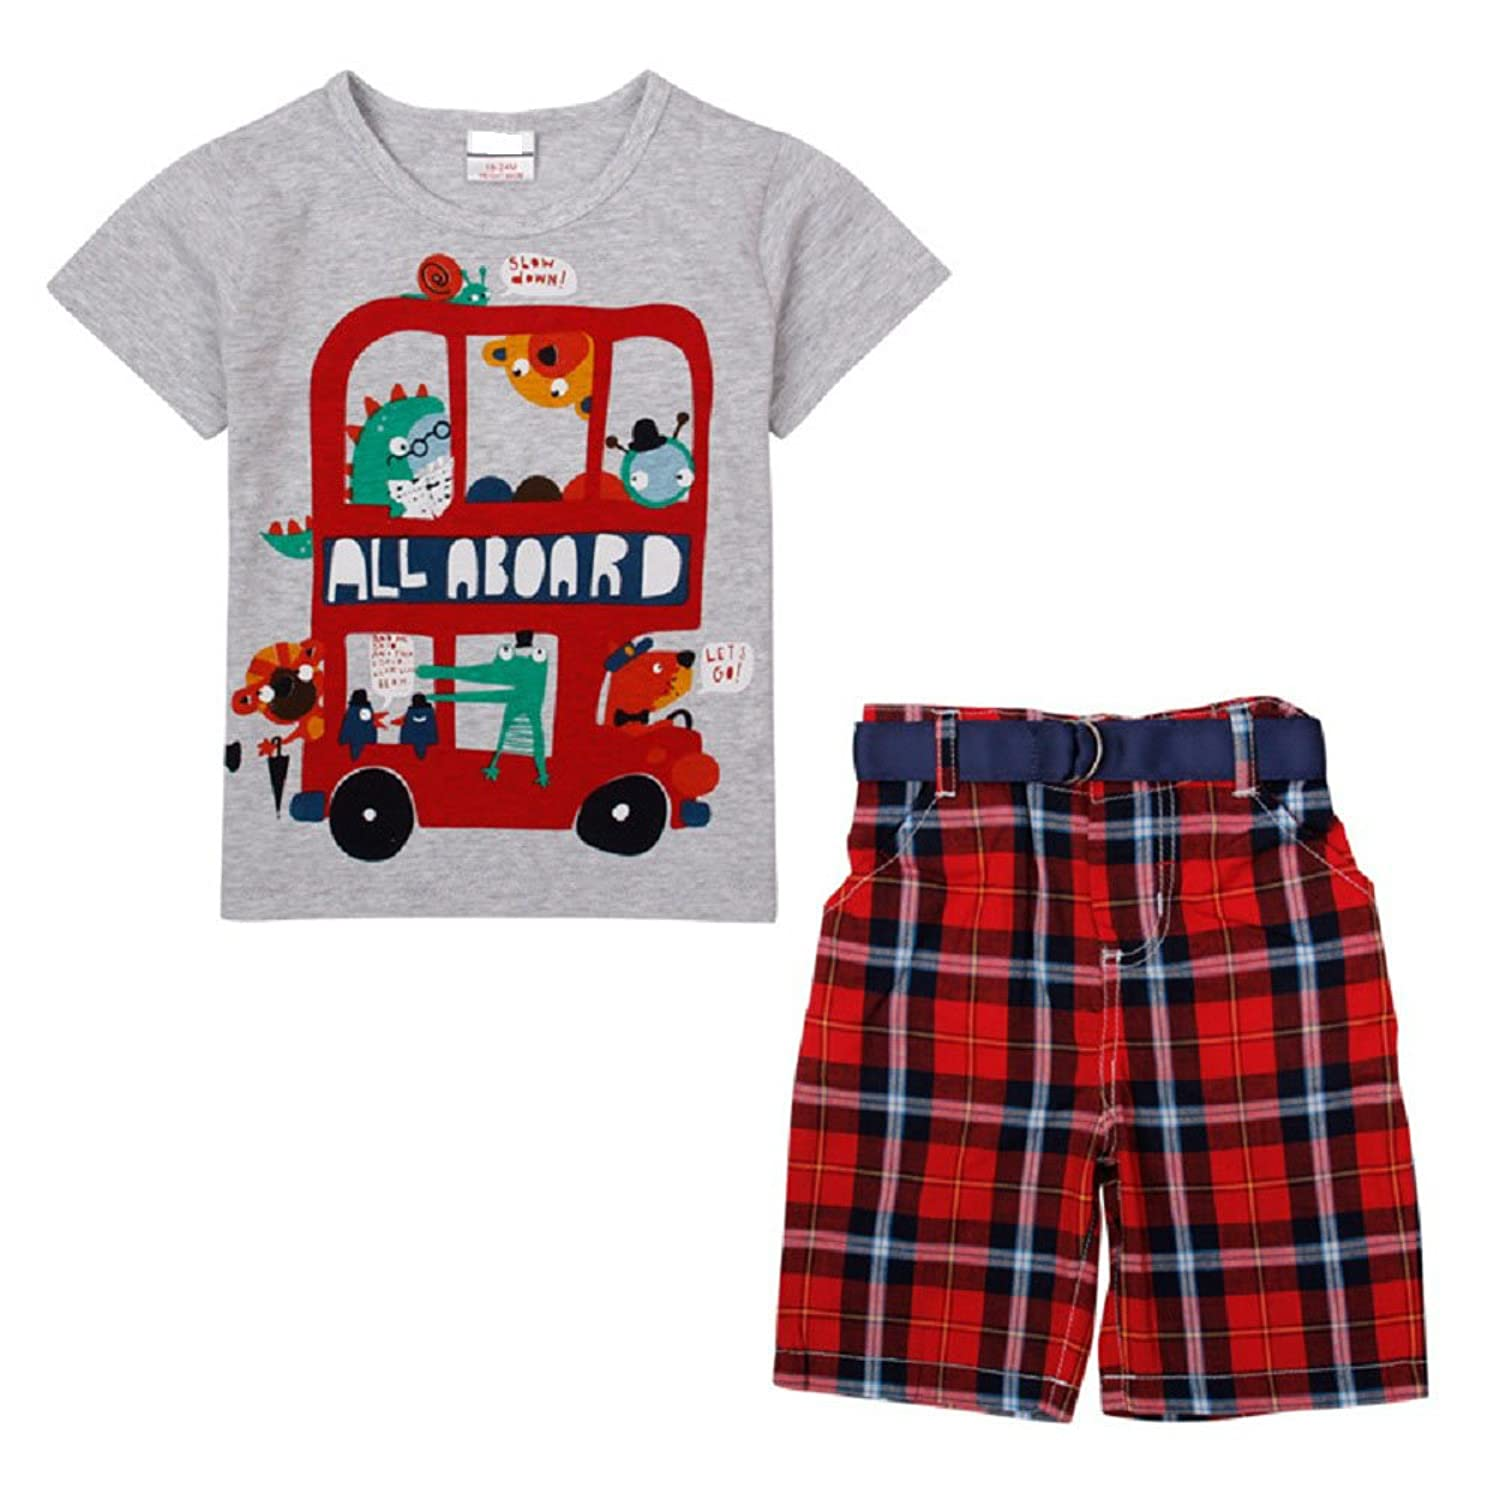 Generic Little Boys' 2 Piece Set Of Short Sleeve T-Shirt and Plaid Shorts Gray Red